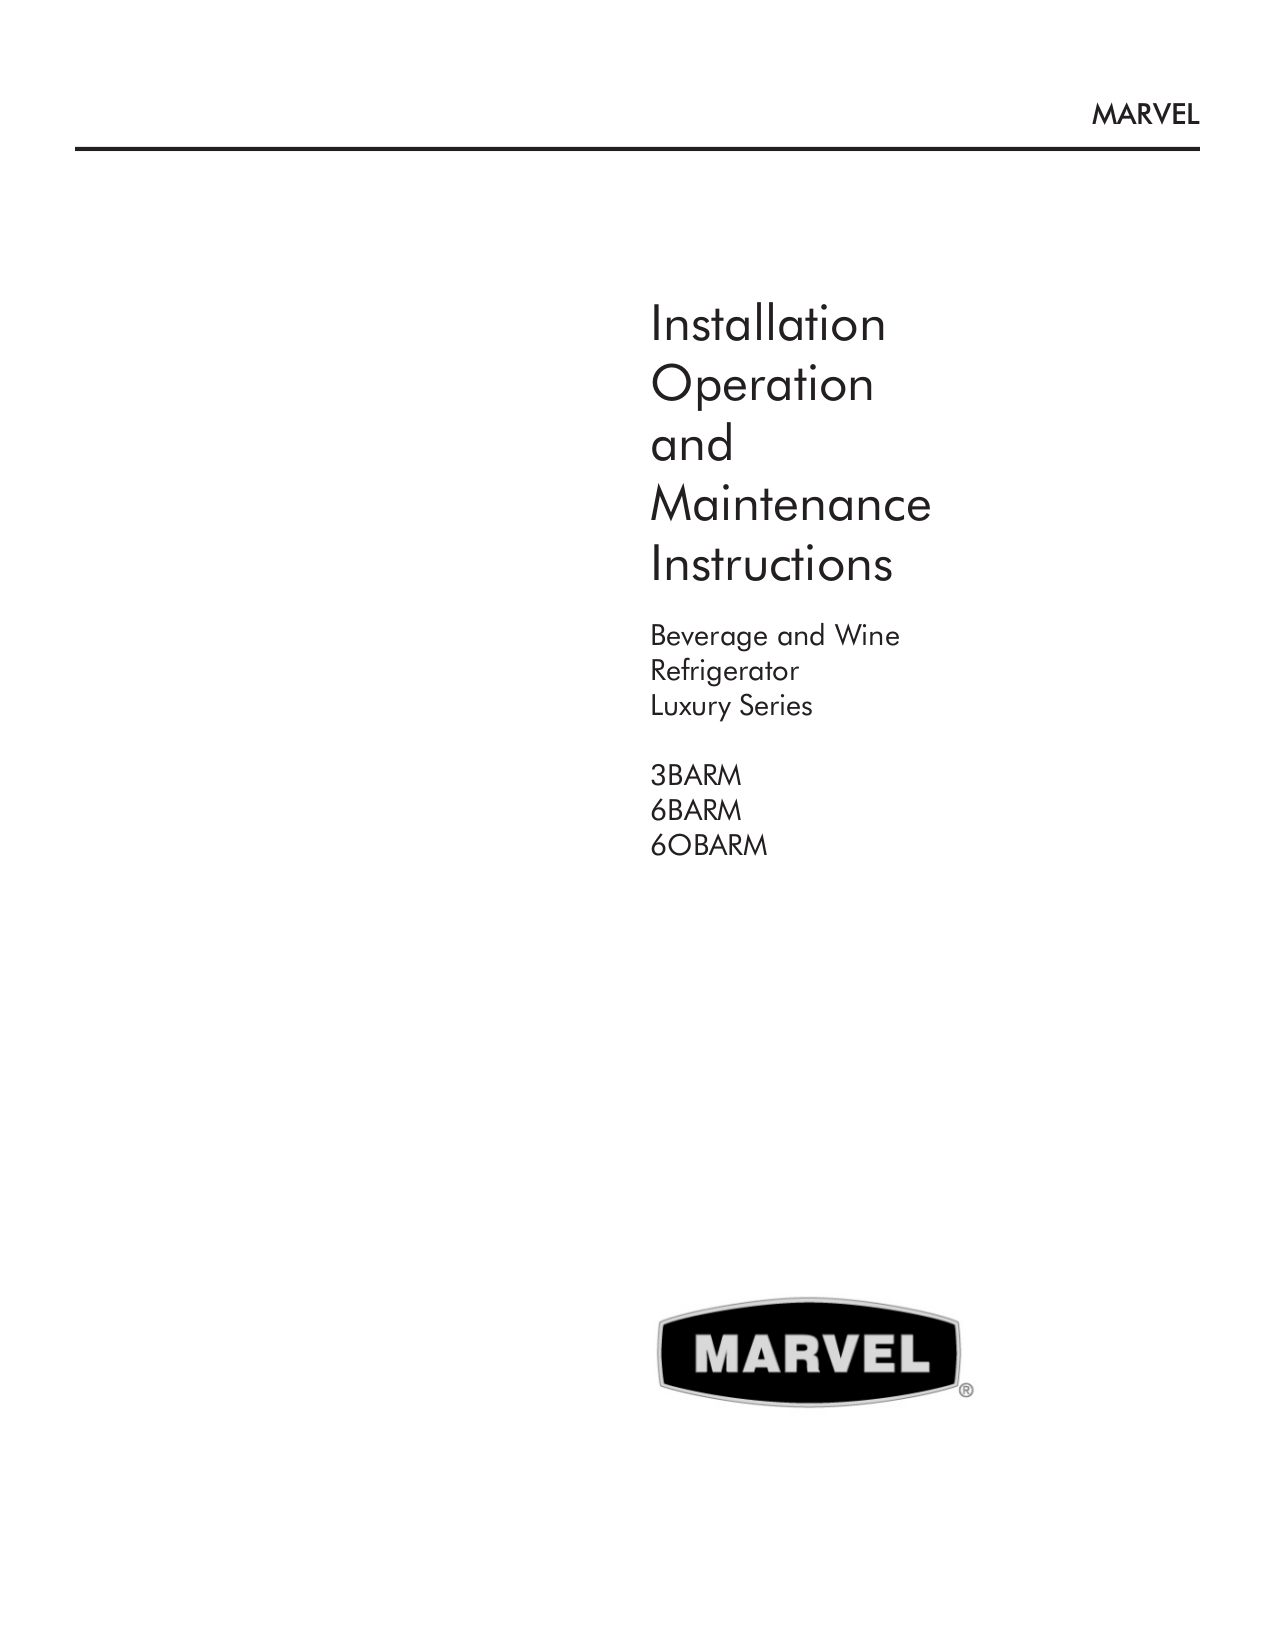 pdf for Marvel Refrigerator 3BARM-BD manual